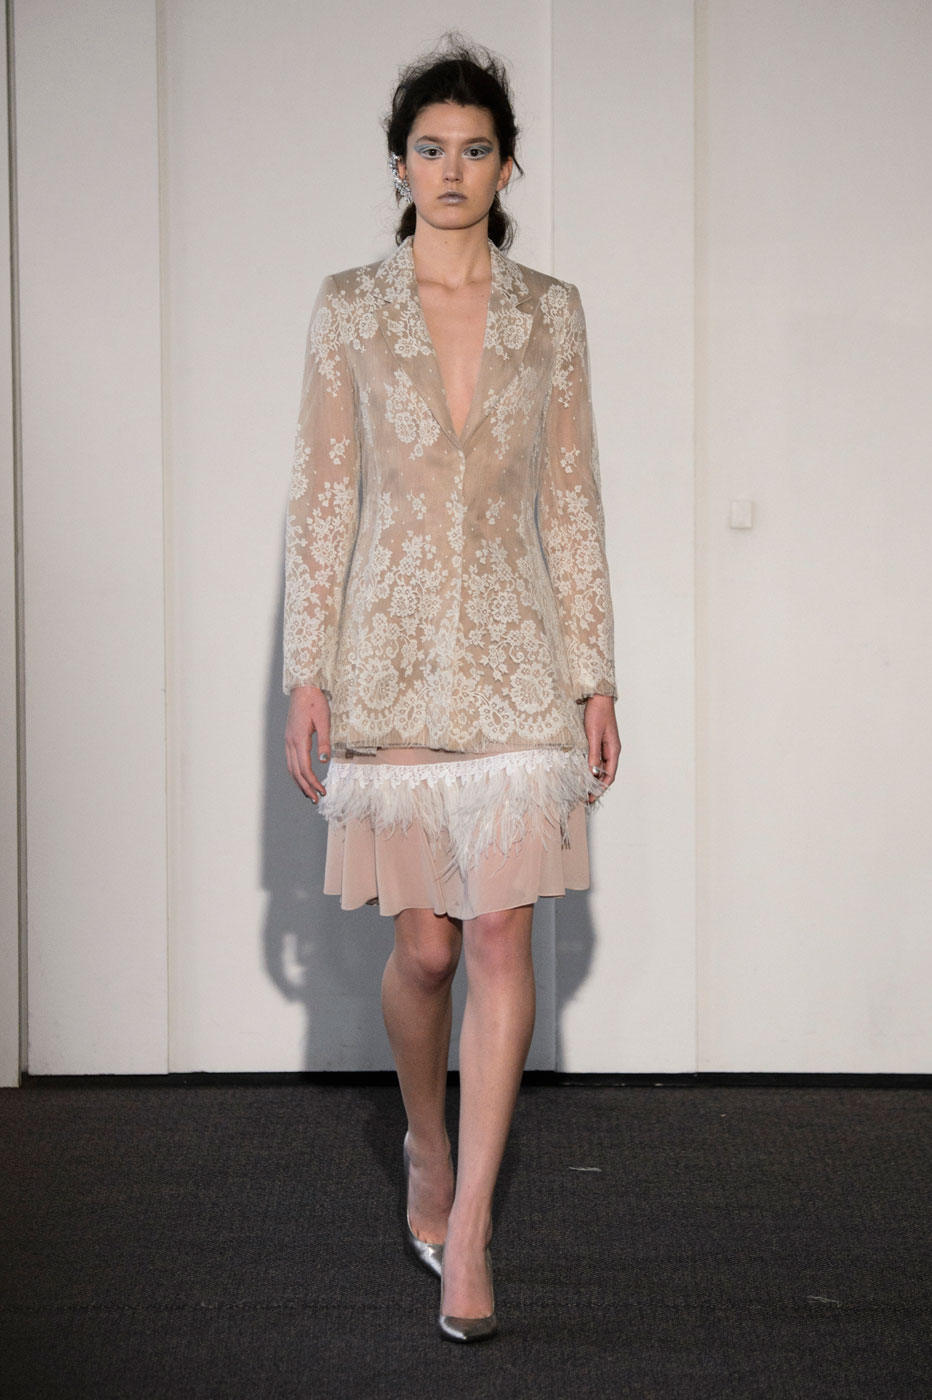 Busardi-fashion-runway-show-haute-couture-paris-spring-2015-the-impression-04